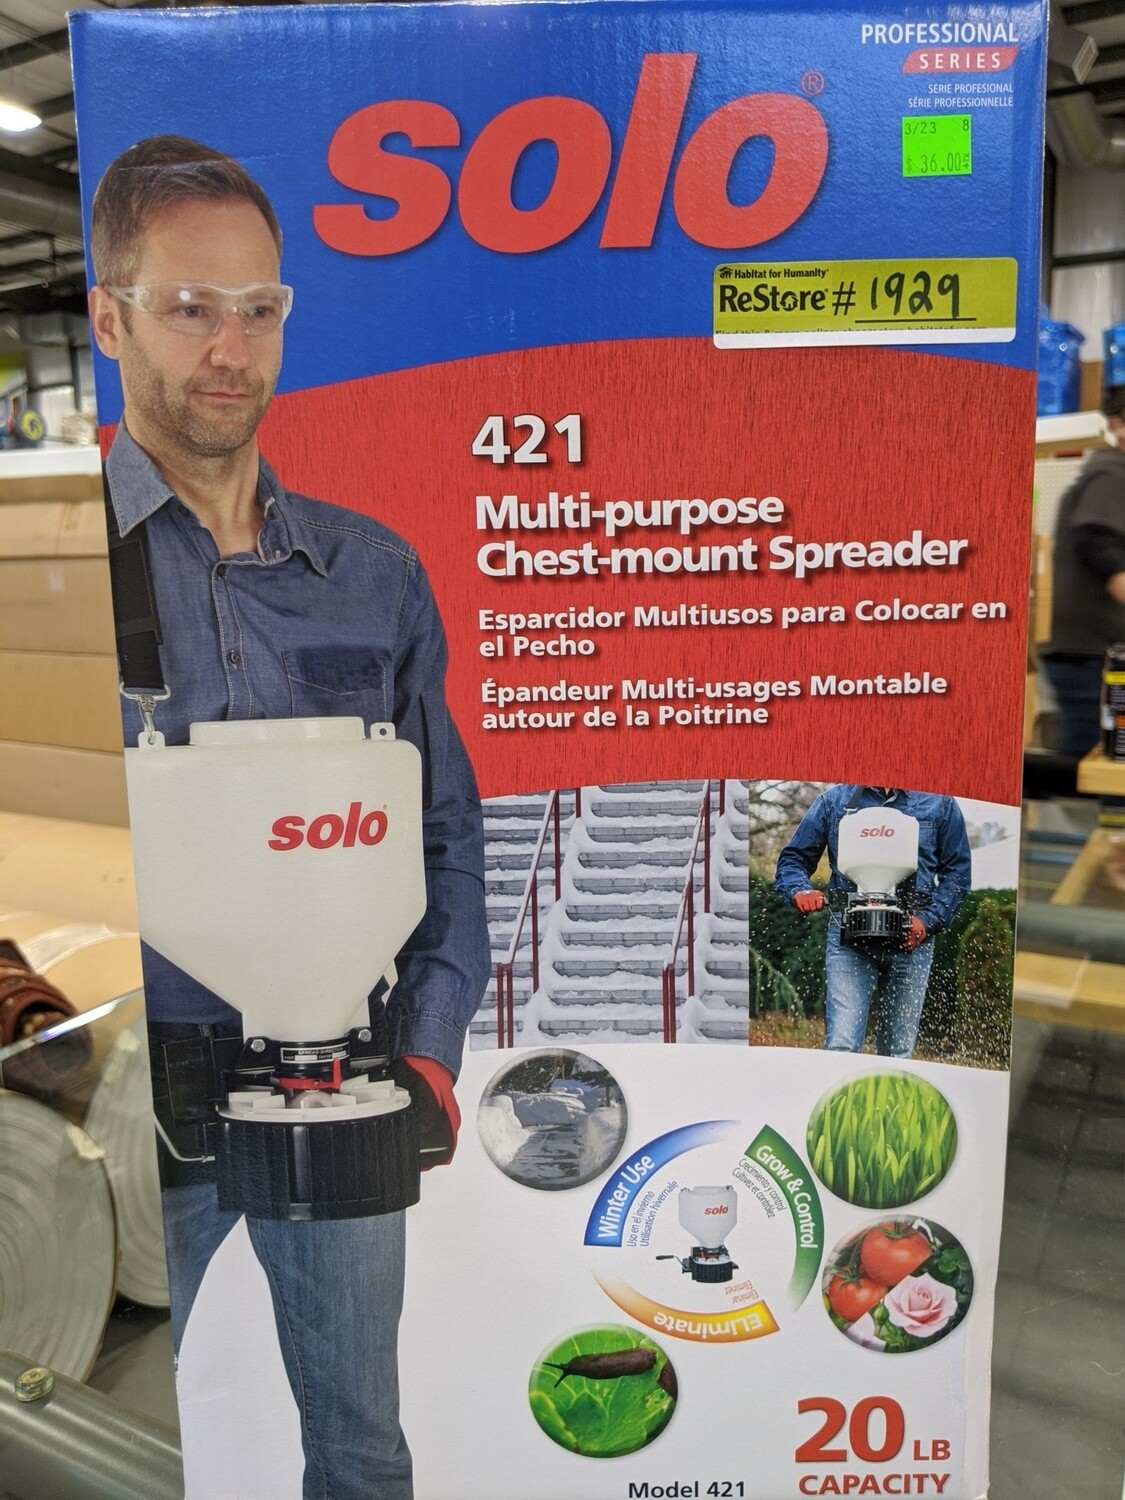 Solo Multipurpose Chest Mount Spreader #1929